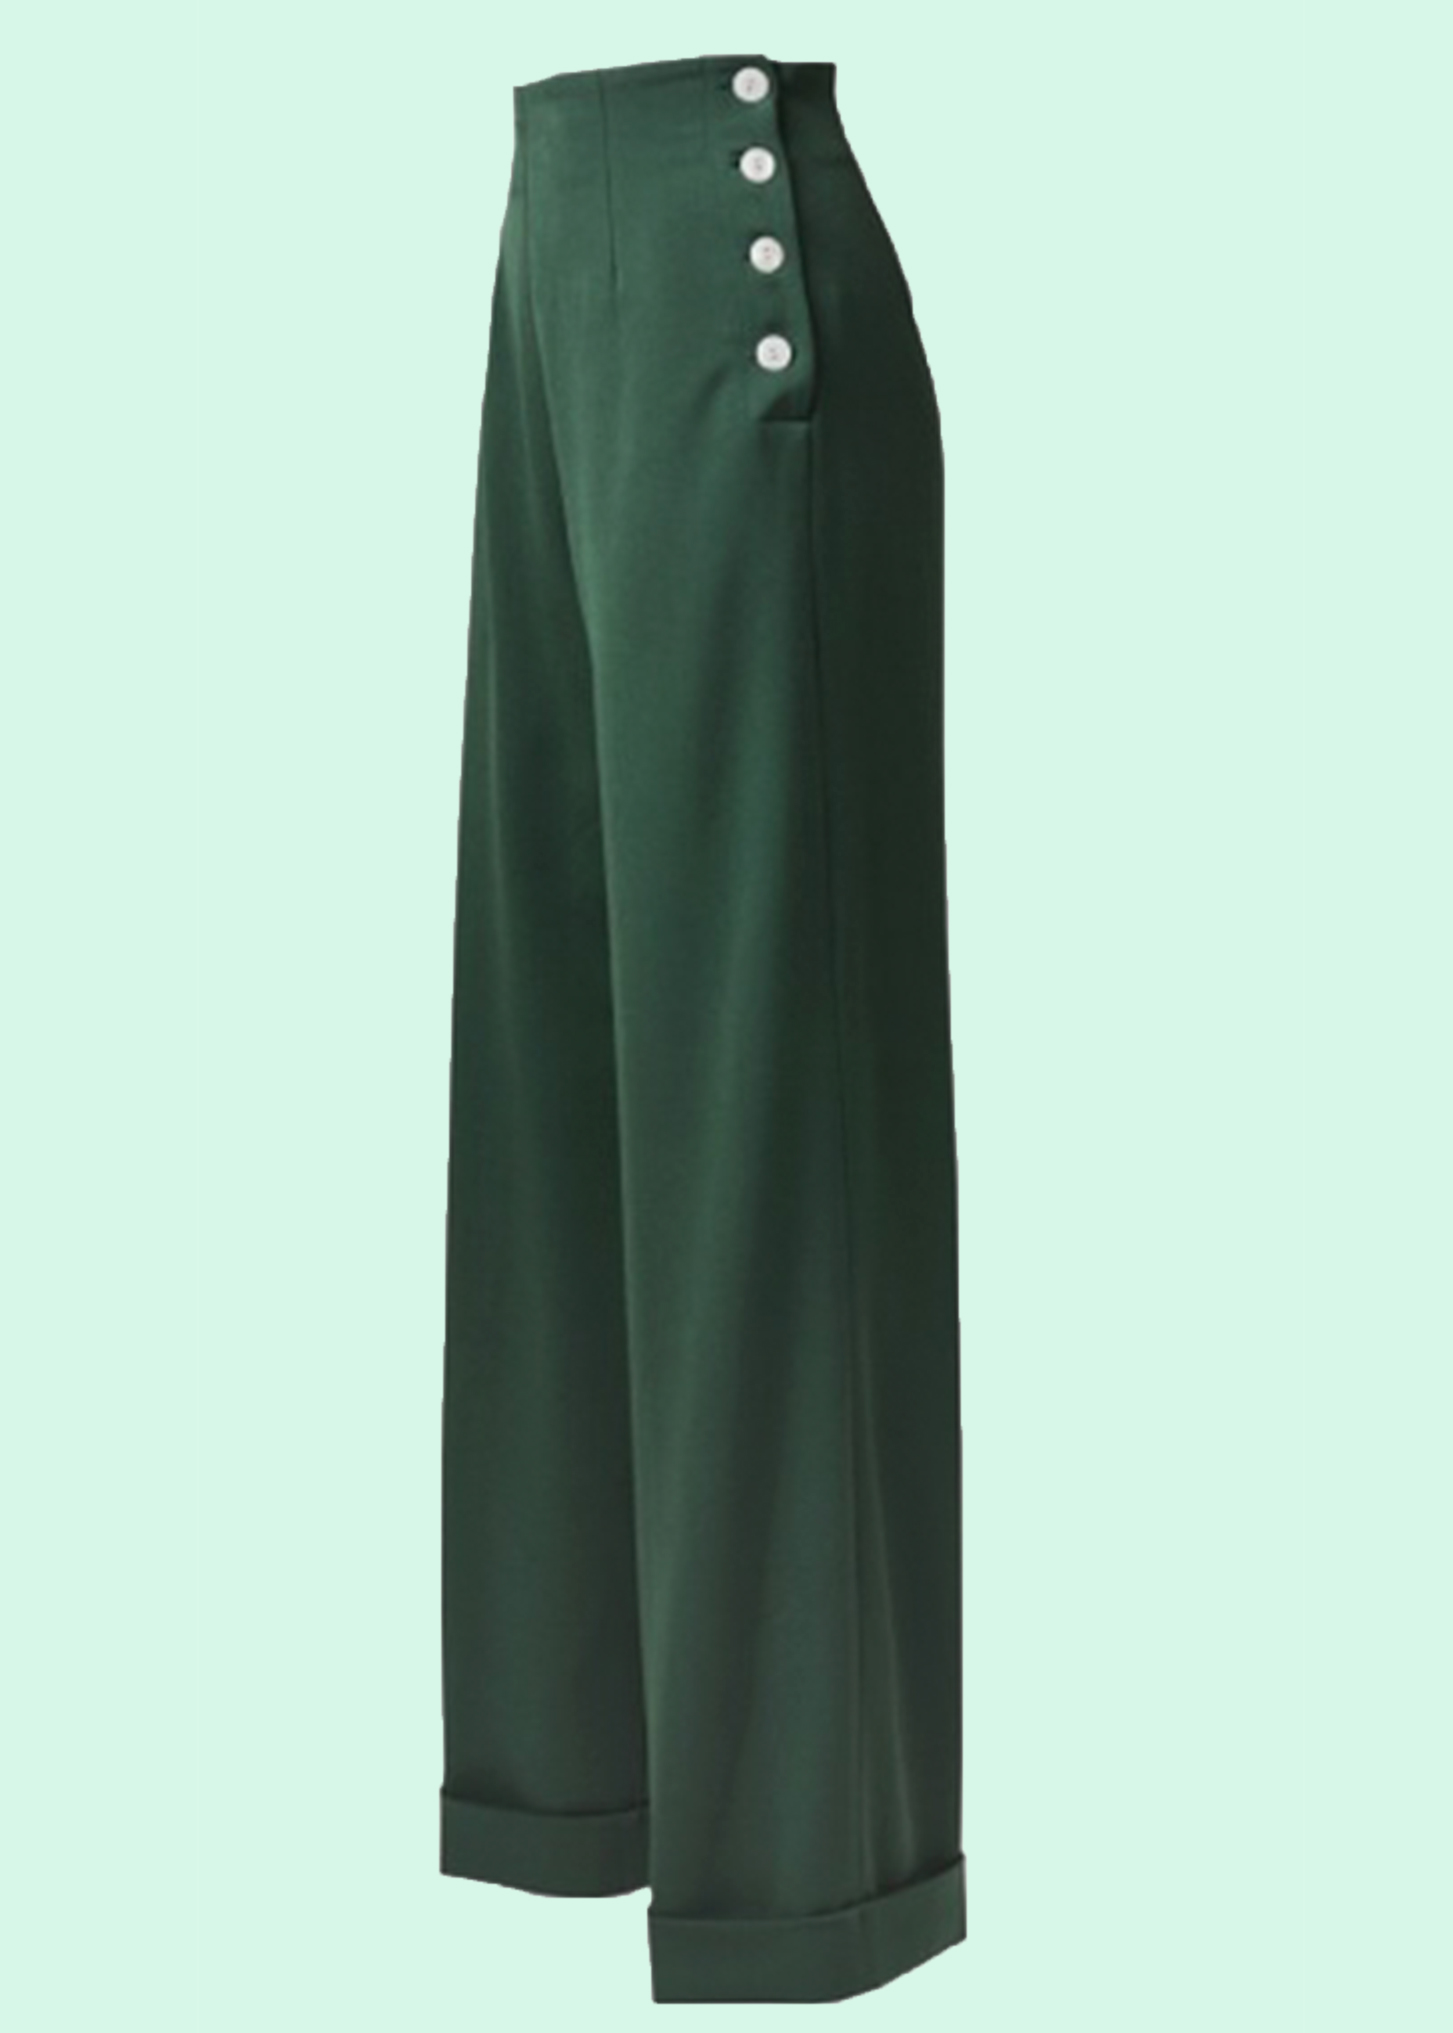 1940s style pants with wide legs from The House Of Foxy